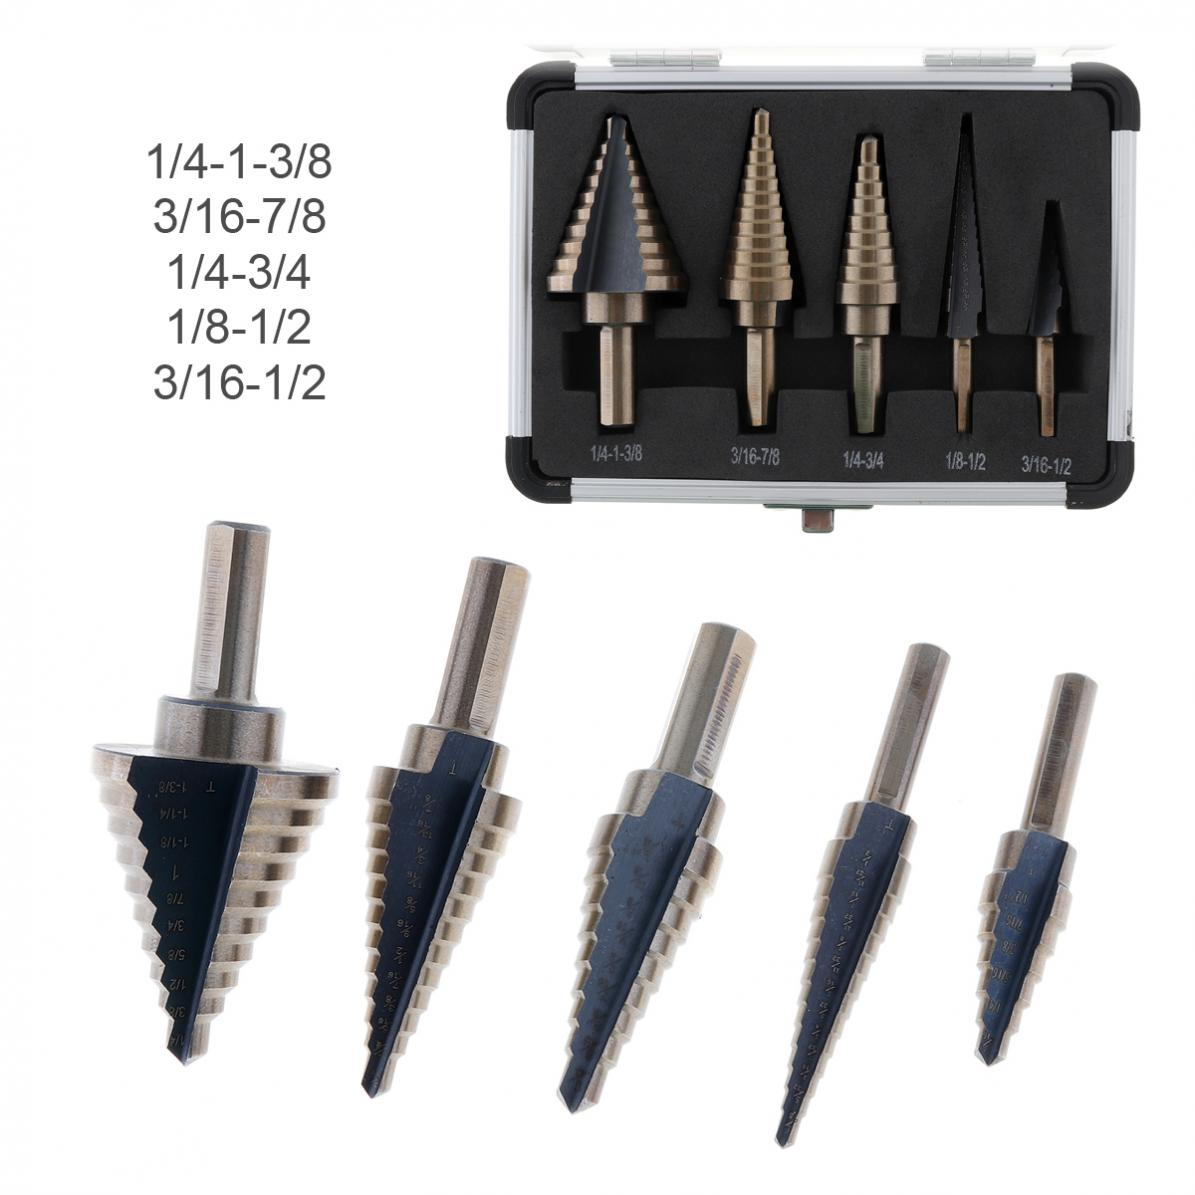 5pcs HSS Steel Step Drill Bit Set Cone Spiral Grooved Drill Bits Multiple Hole of 1/4-1-3/8 3/16-7/8 1/4-3/4 1/8-1/2 3/16-1/2 воблер rapala jointed shad rap jsr prt суспендер 1 2 1 8м 4см 5гр